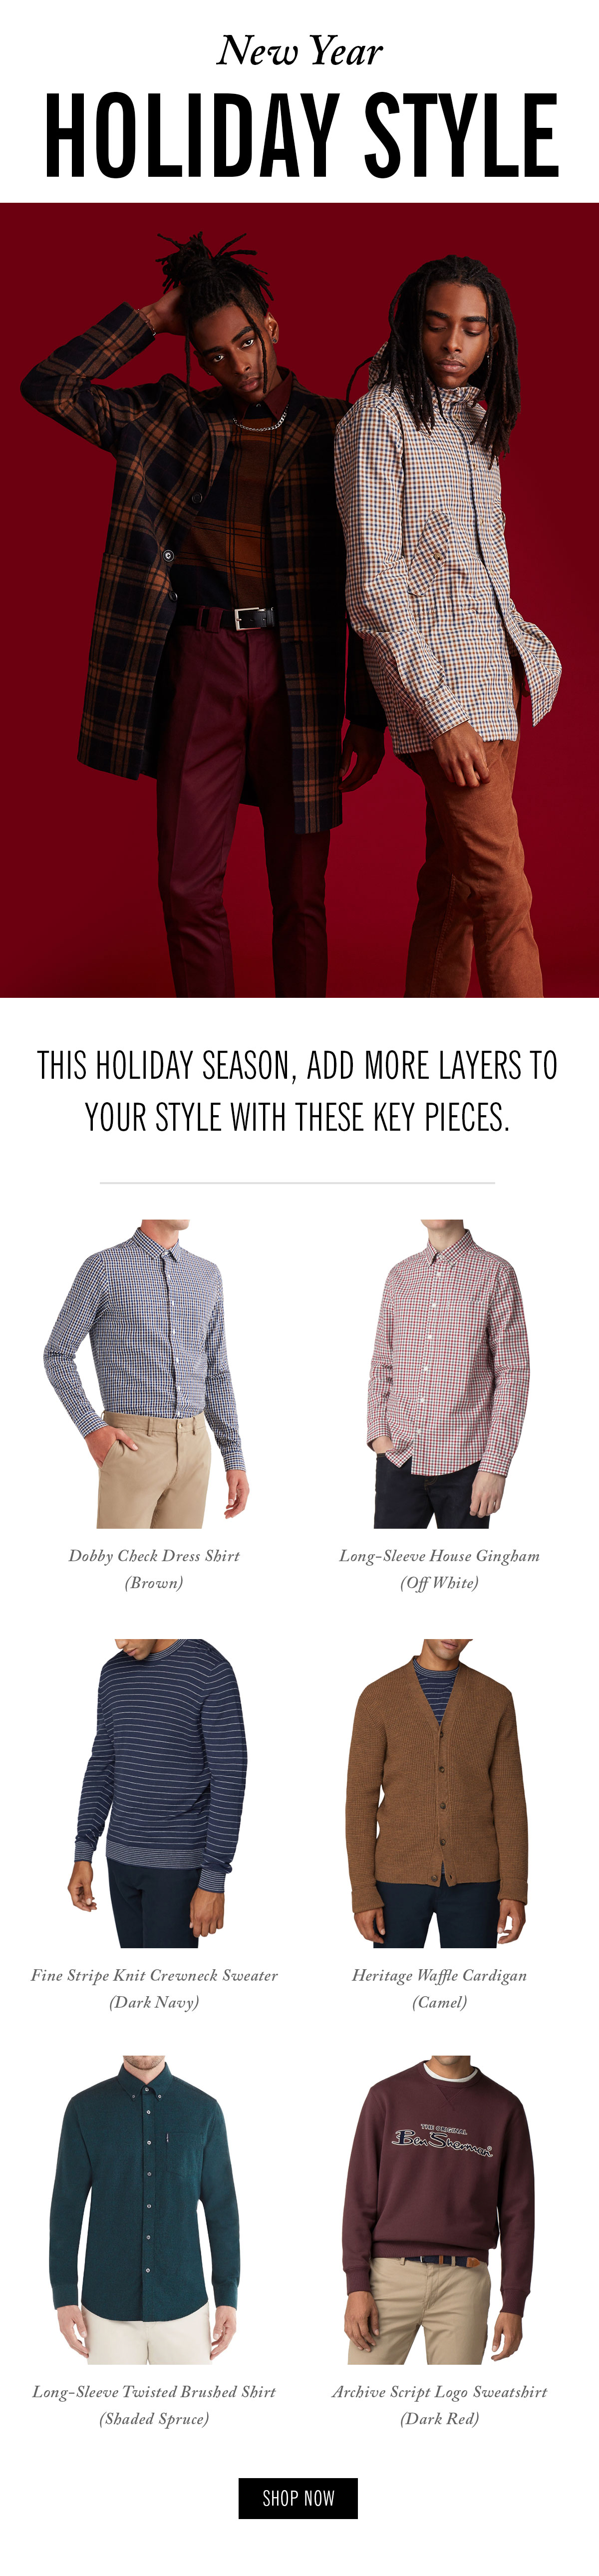 New Year Holiday Style | This holiday season, add more layers to your style with these key pieces.